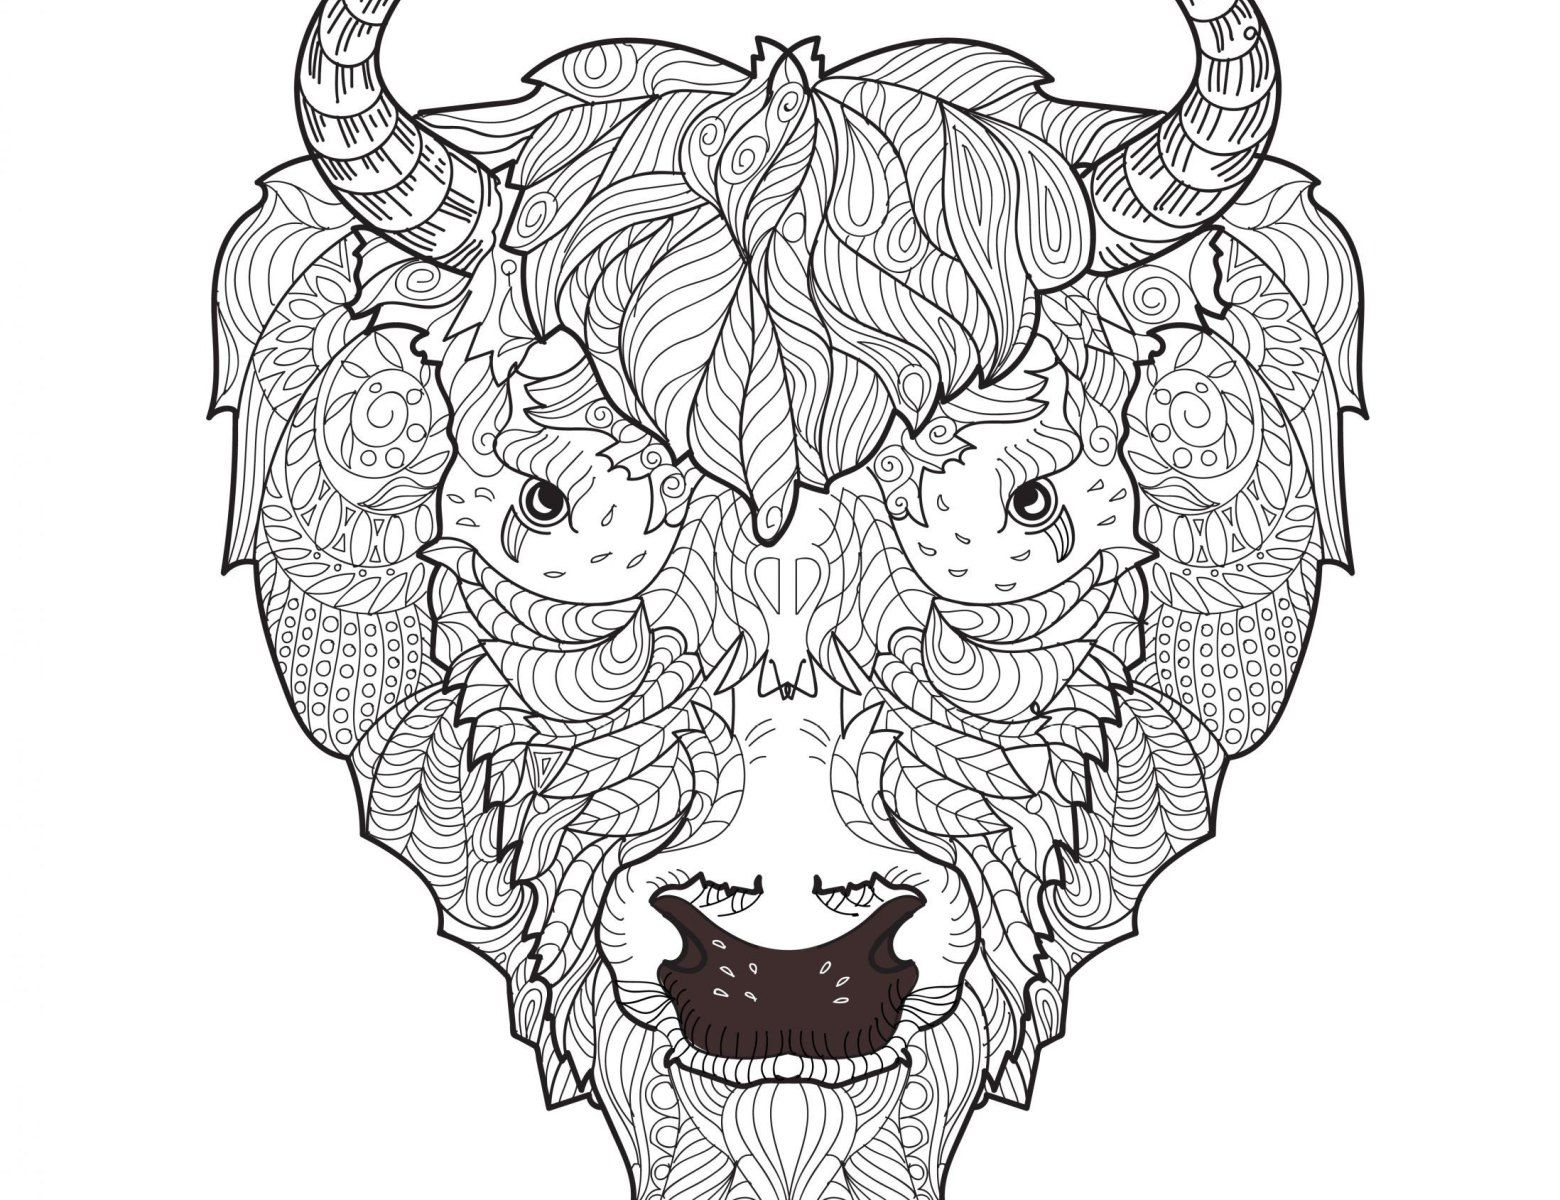 Adult Coloring Pages: Bison | Adult Coloring Pages | Pinterest ...